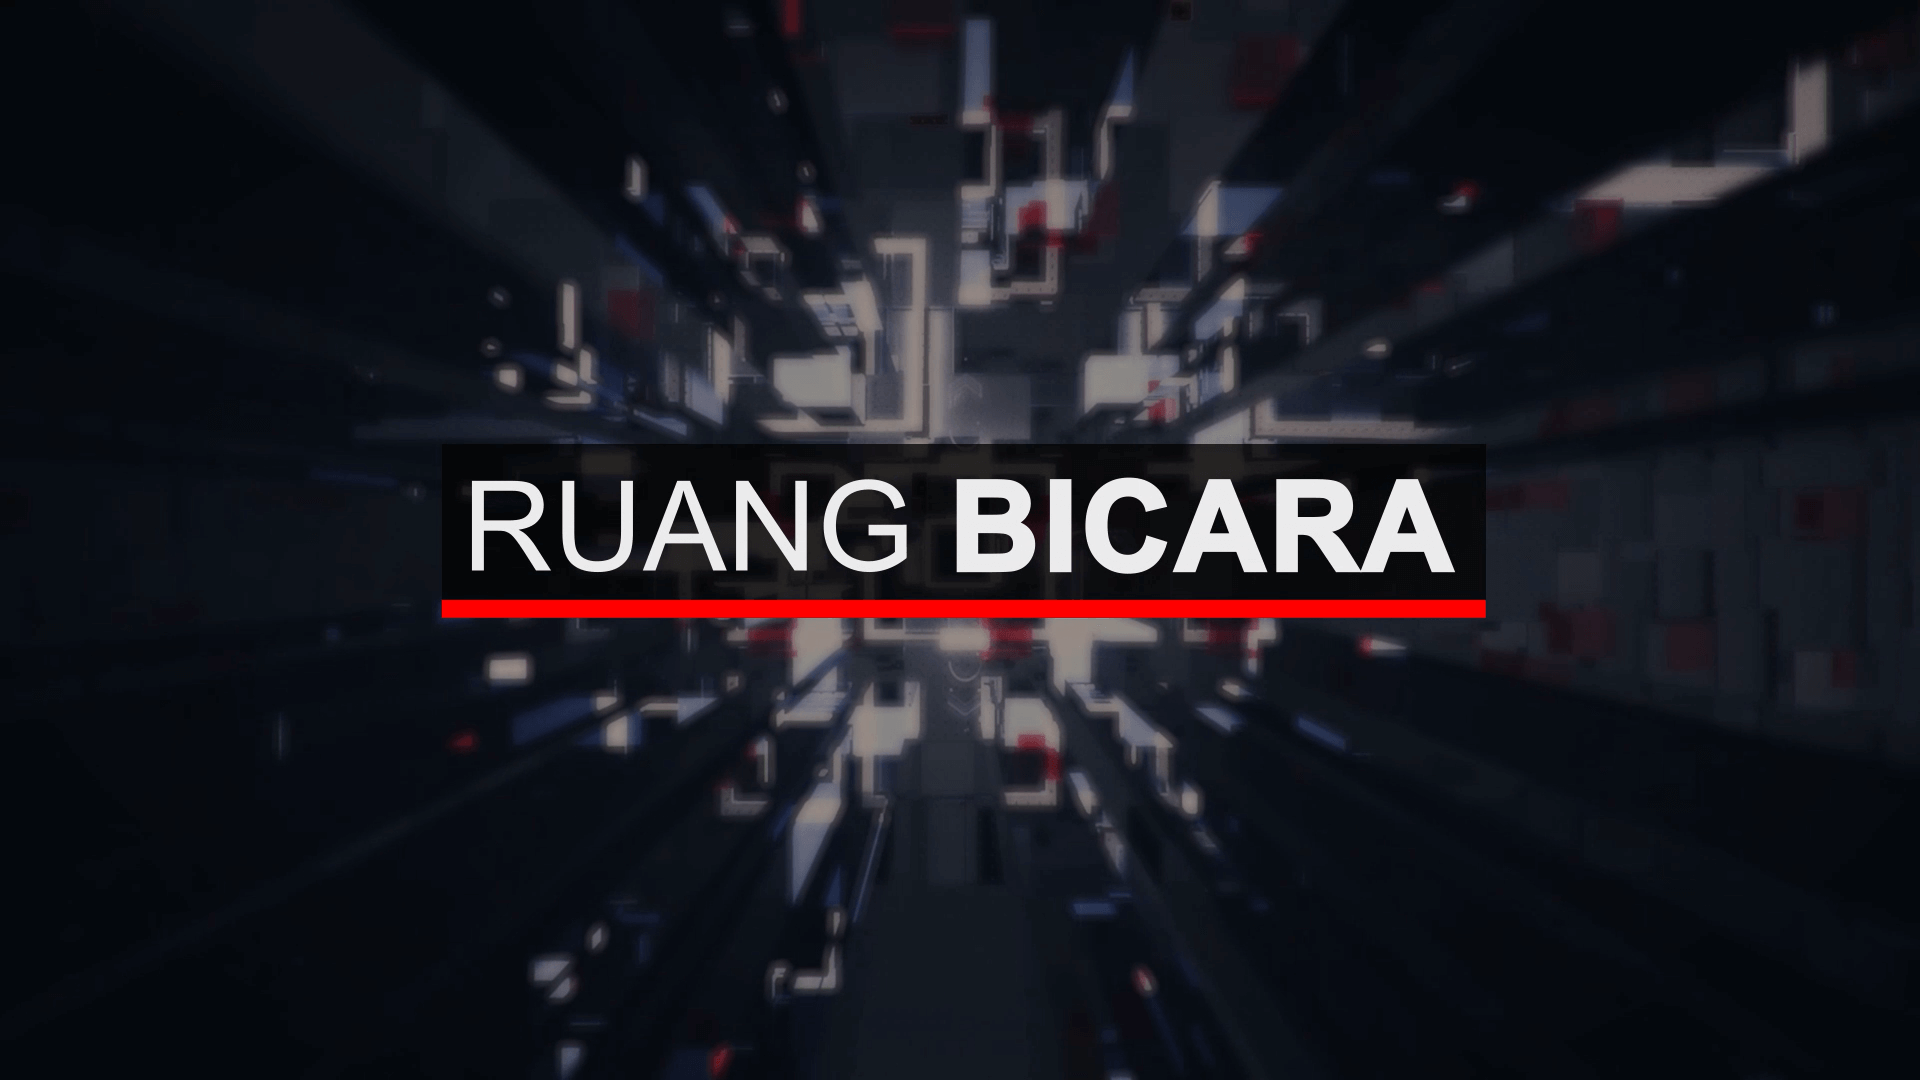 https://res.cloudinary.com/pt-catur-media-indonesia/image/upload/v1620205631/program/ruang-bicara/cover-ruang-bicara_fjqdzj.png